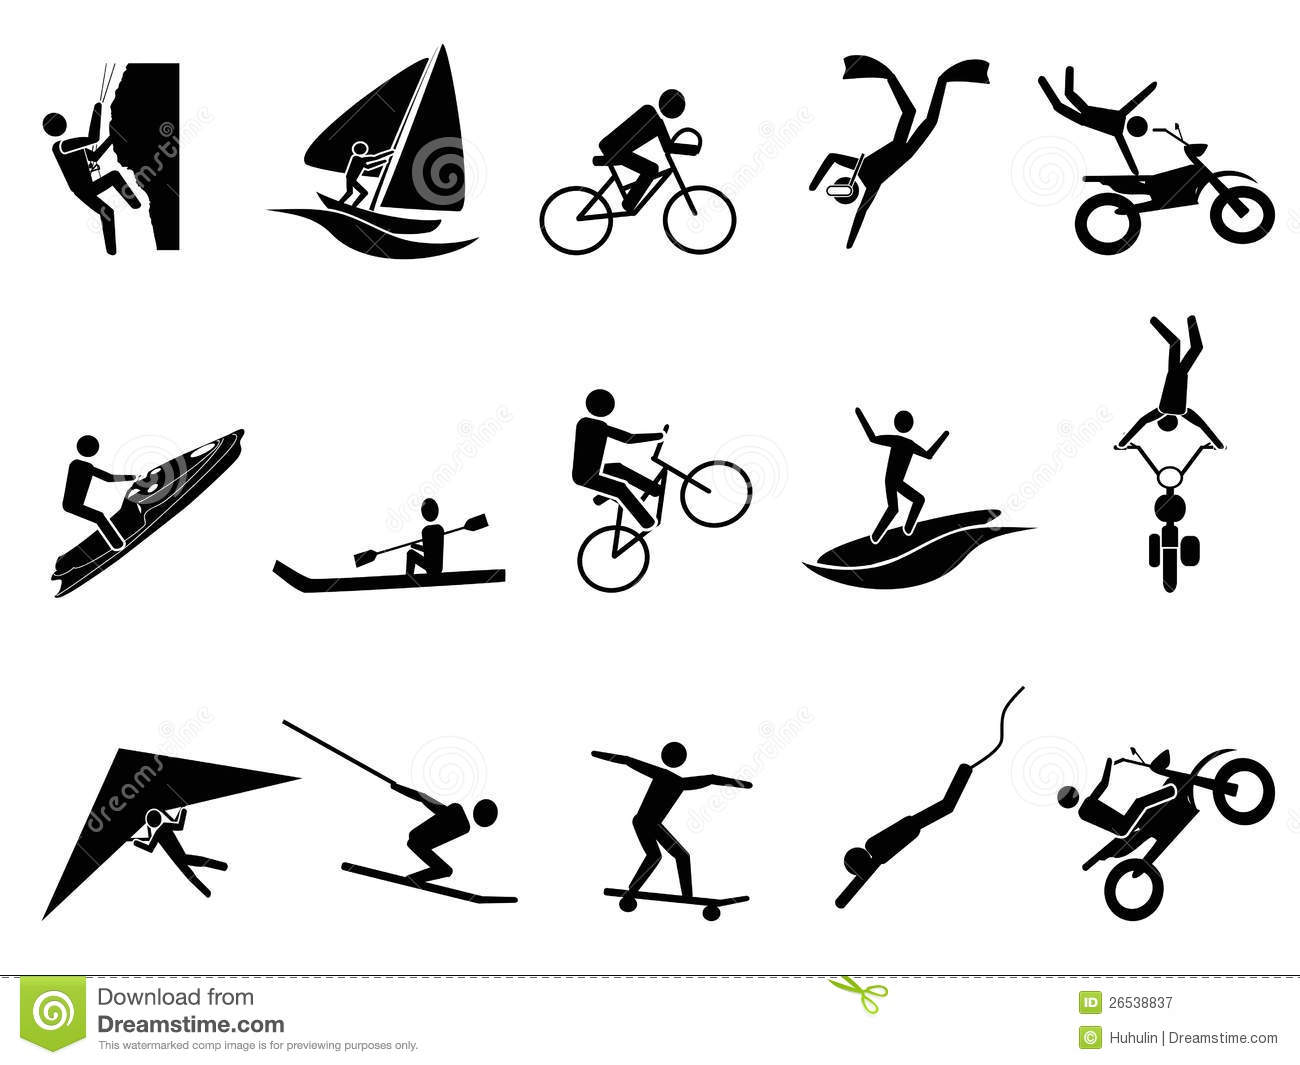 Stock Illustration Road Bike With Gear Shifting in addition Stock Illustration Gears Outline Vector Icon together with Royalty Free Stock Photography Cylindrical Spiral Spring Illustration Coil White Background Image35095287 further Tribal Tatto Logo as well 260766818673. on gear vector clip art